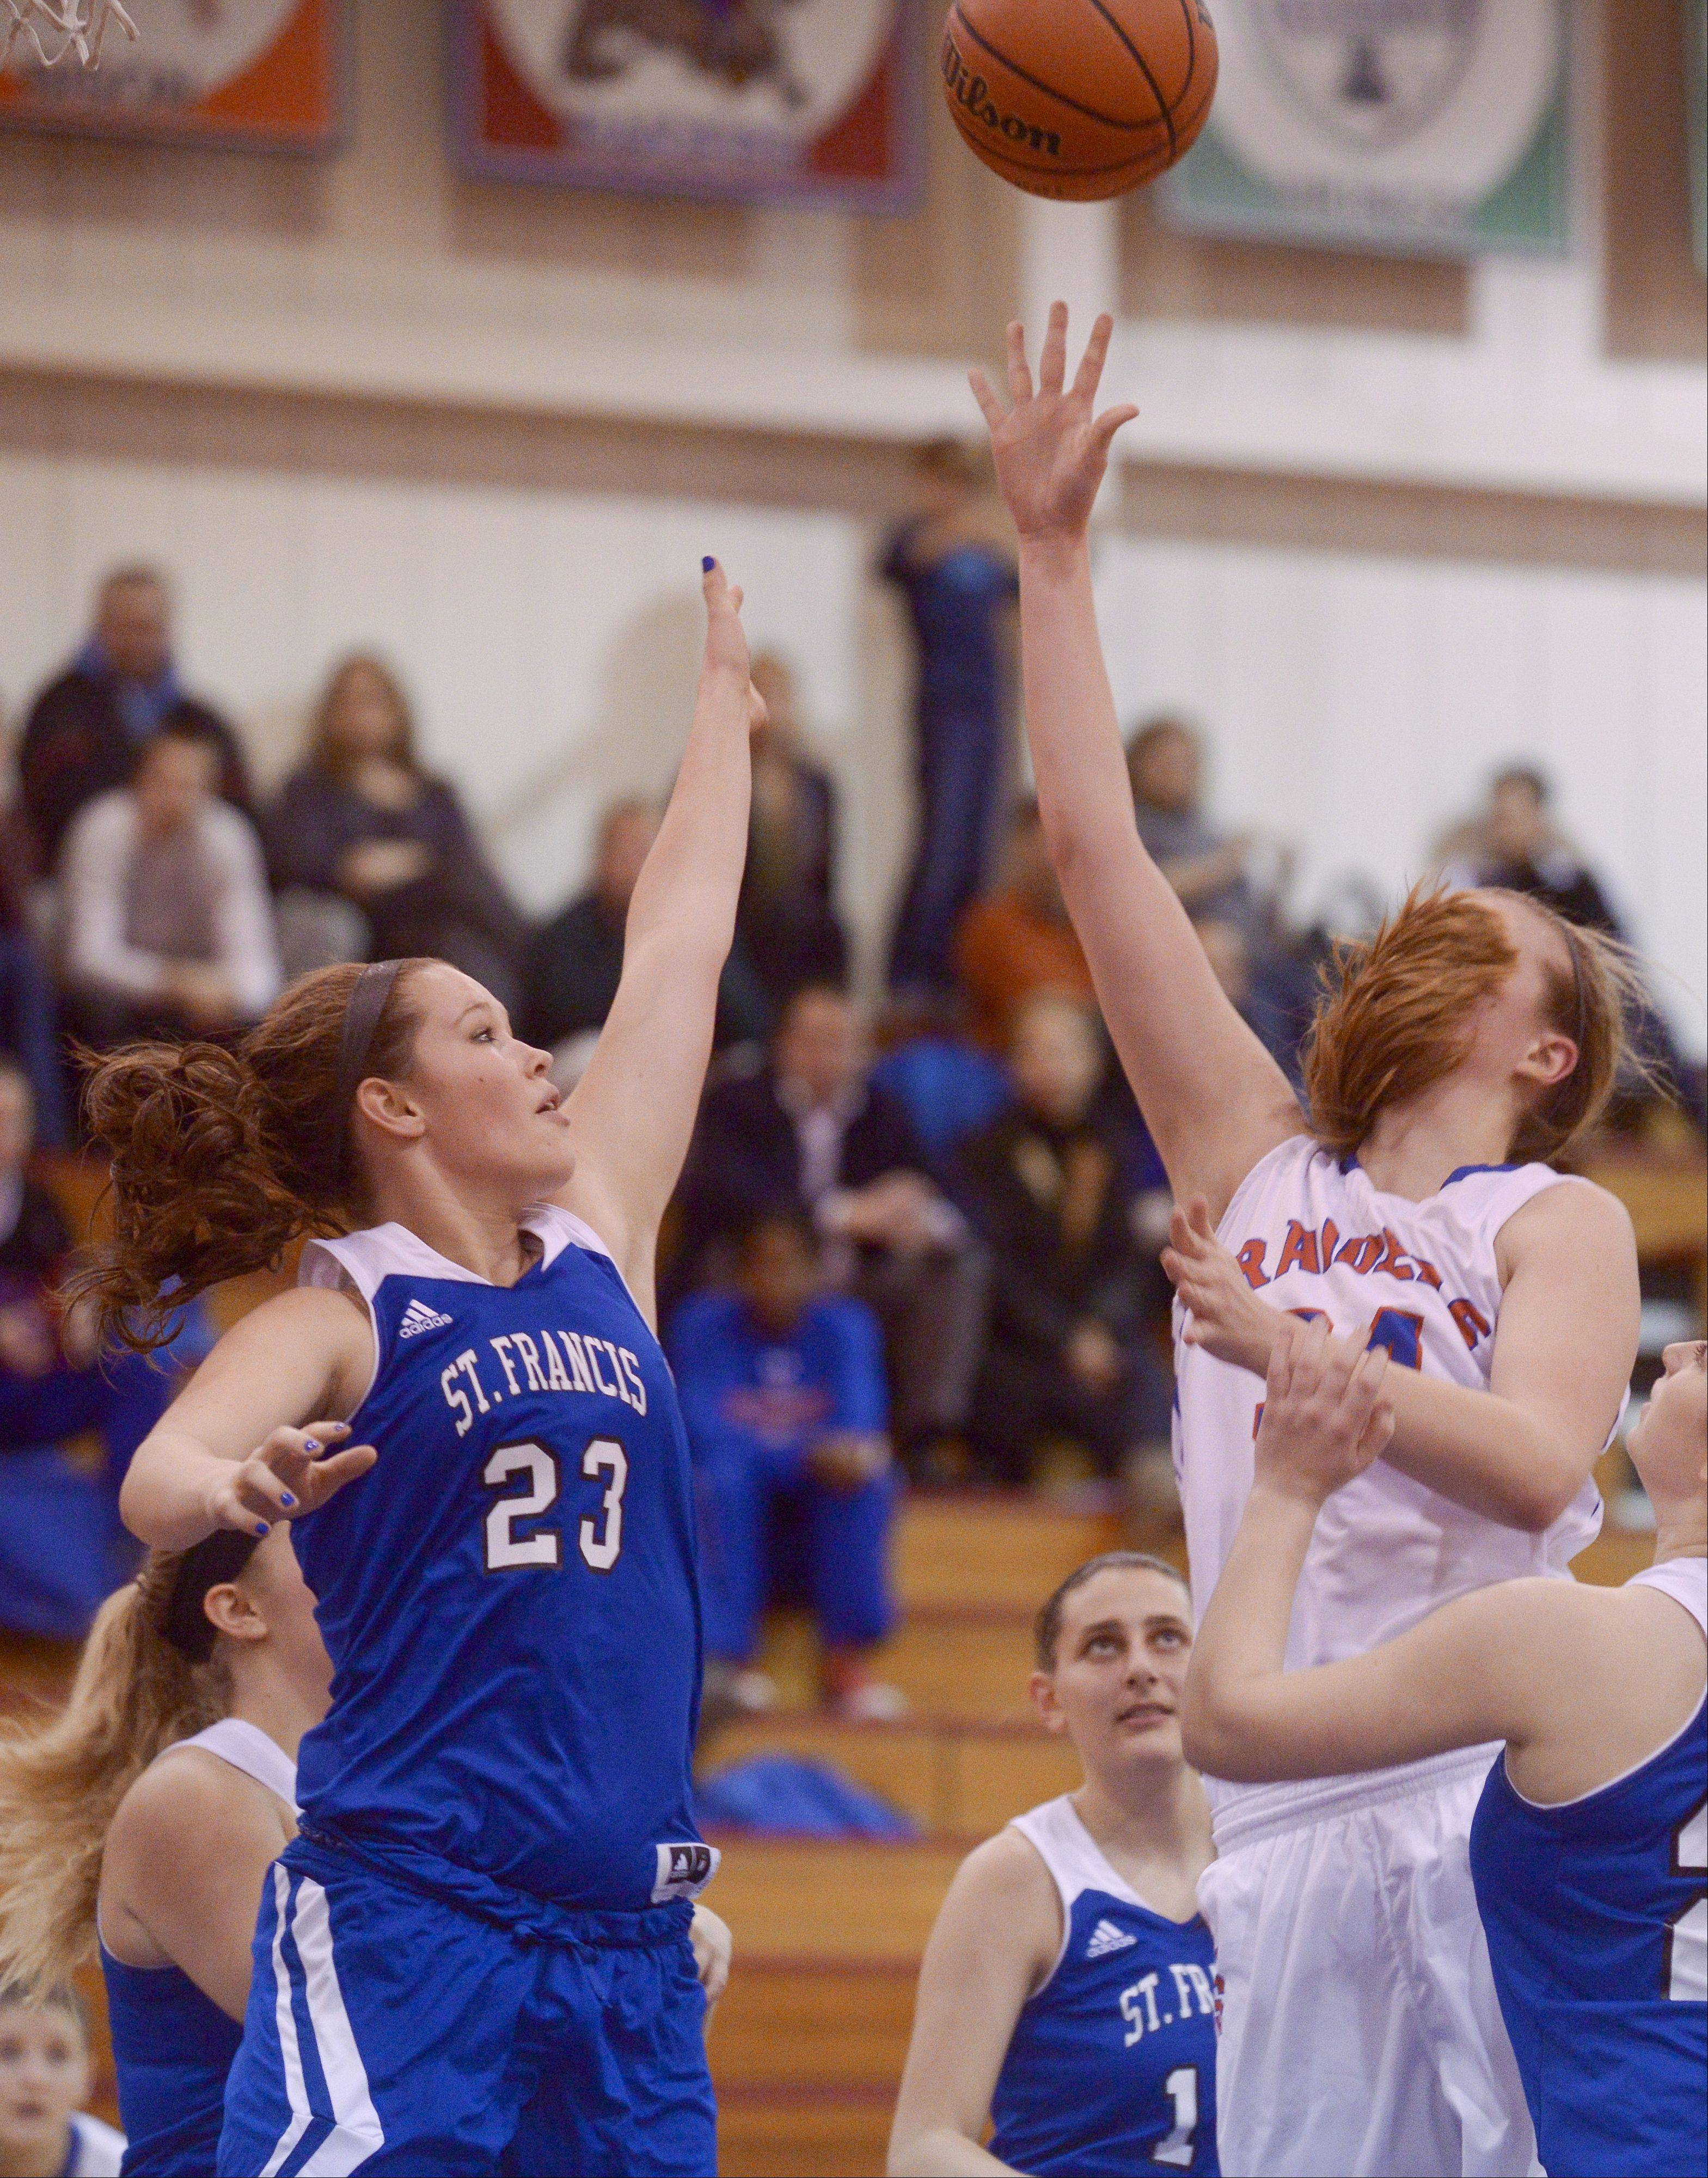 Photos from the St. Francis at Glenbard South girls basketball game on Thursday, Jan. 23.